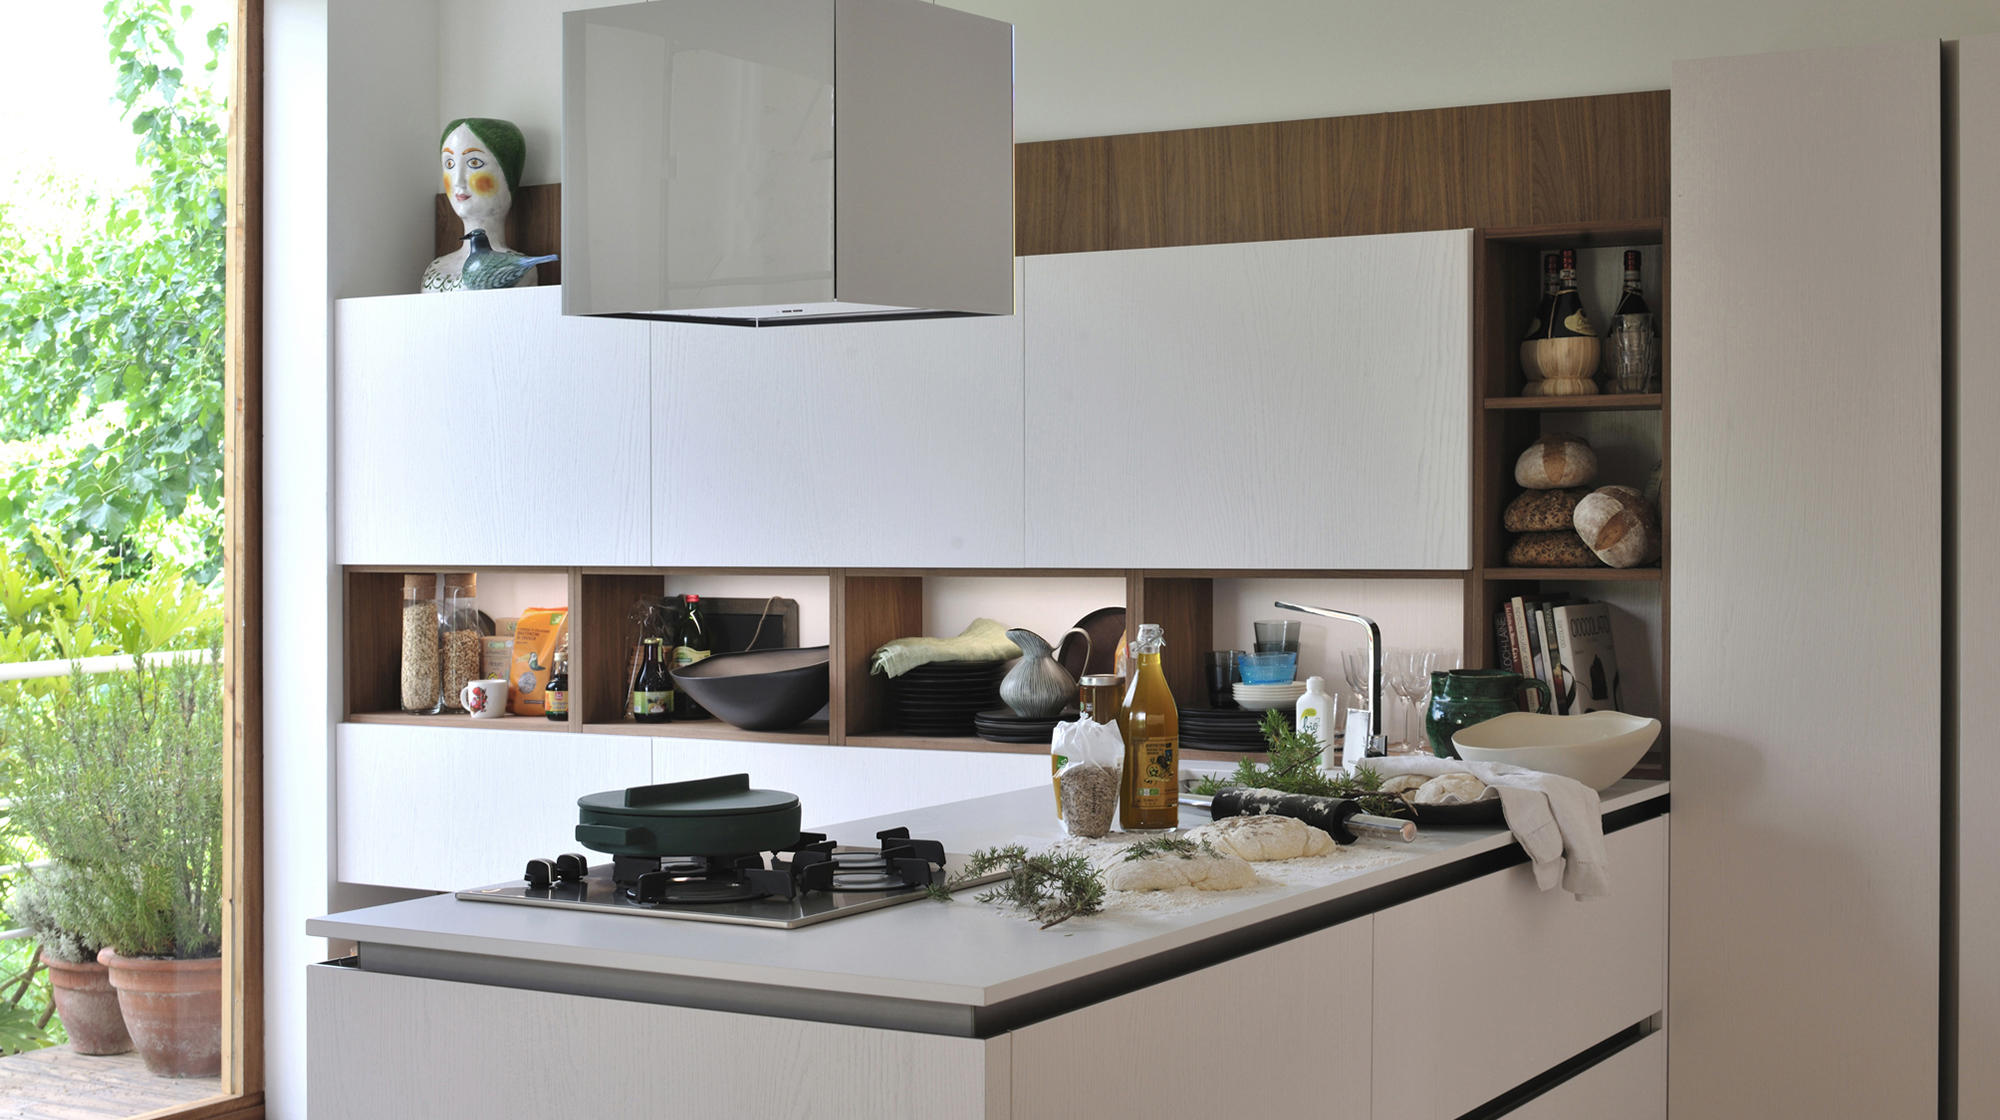 Oyster pro fitted kitchens from veneta cucine architonic - Veneta cucine oyster pro ...